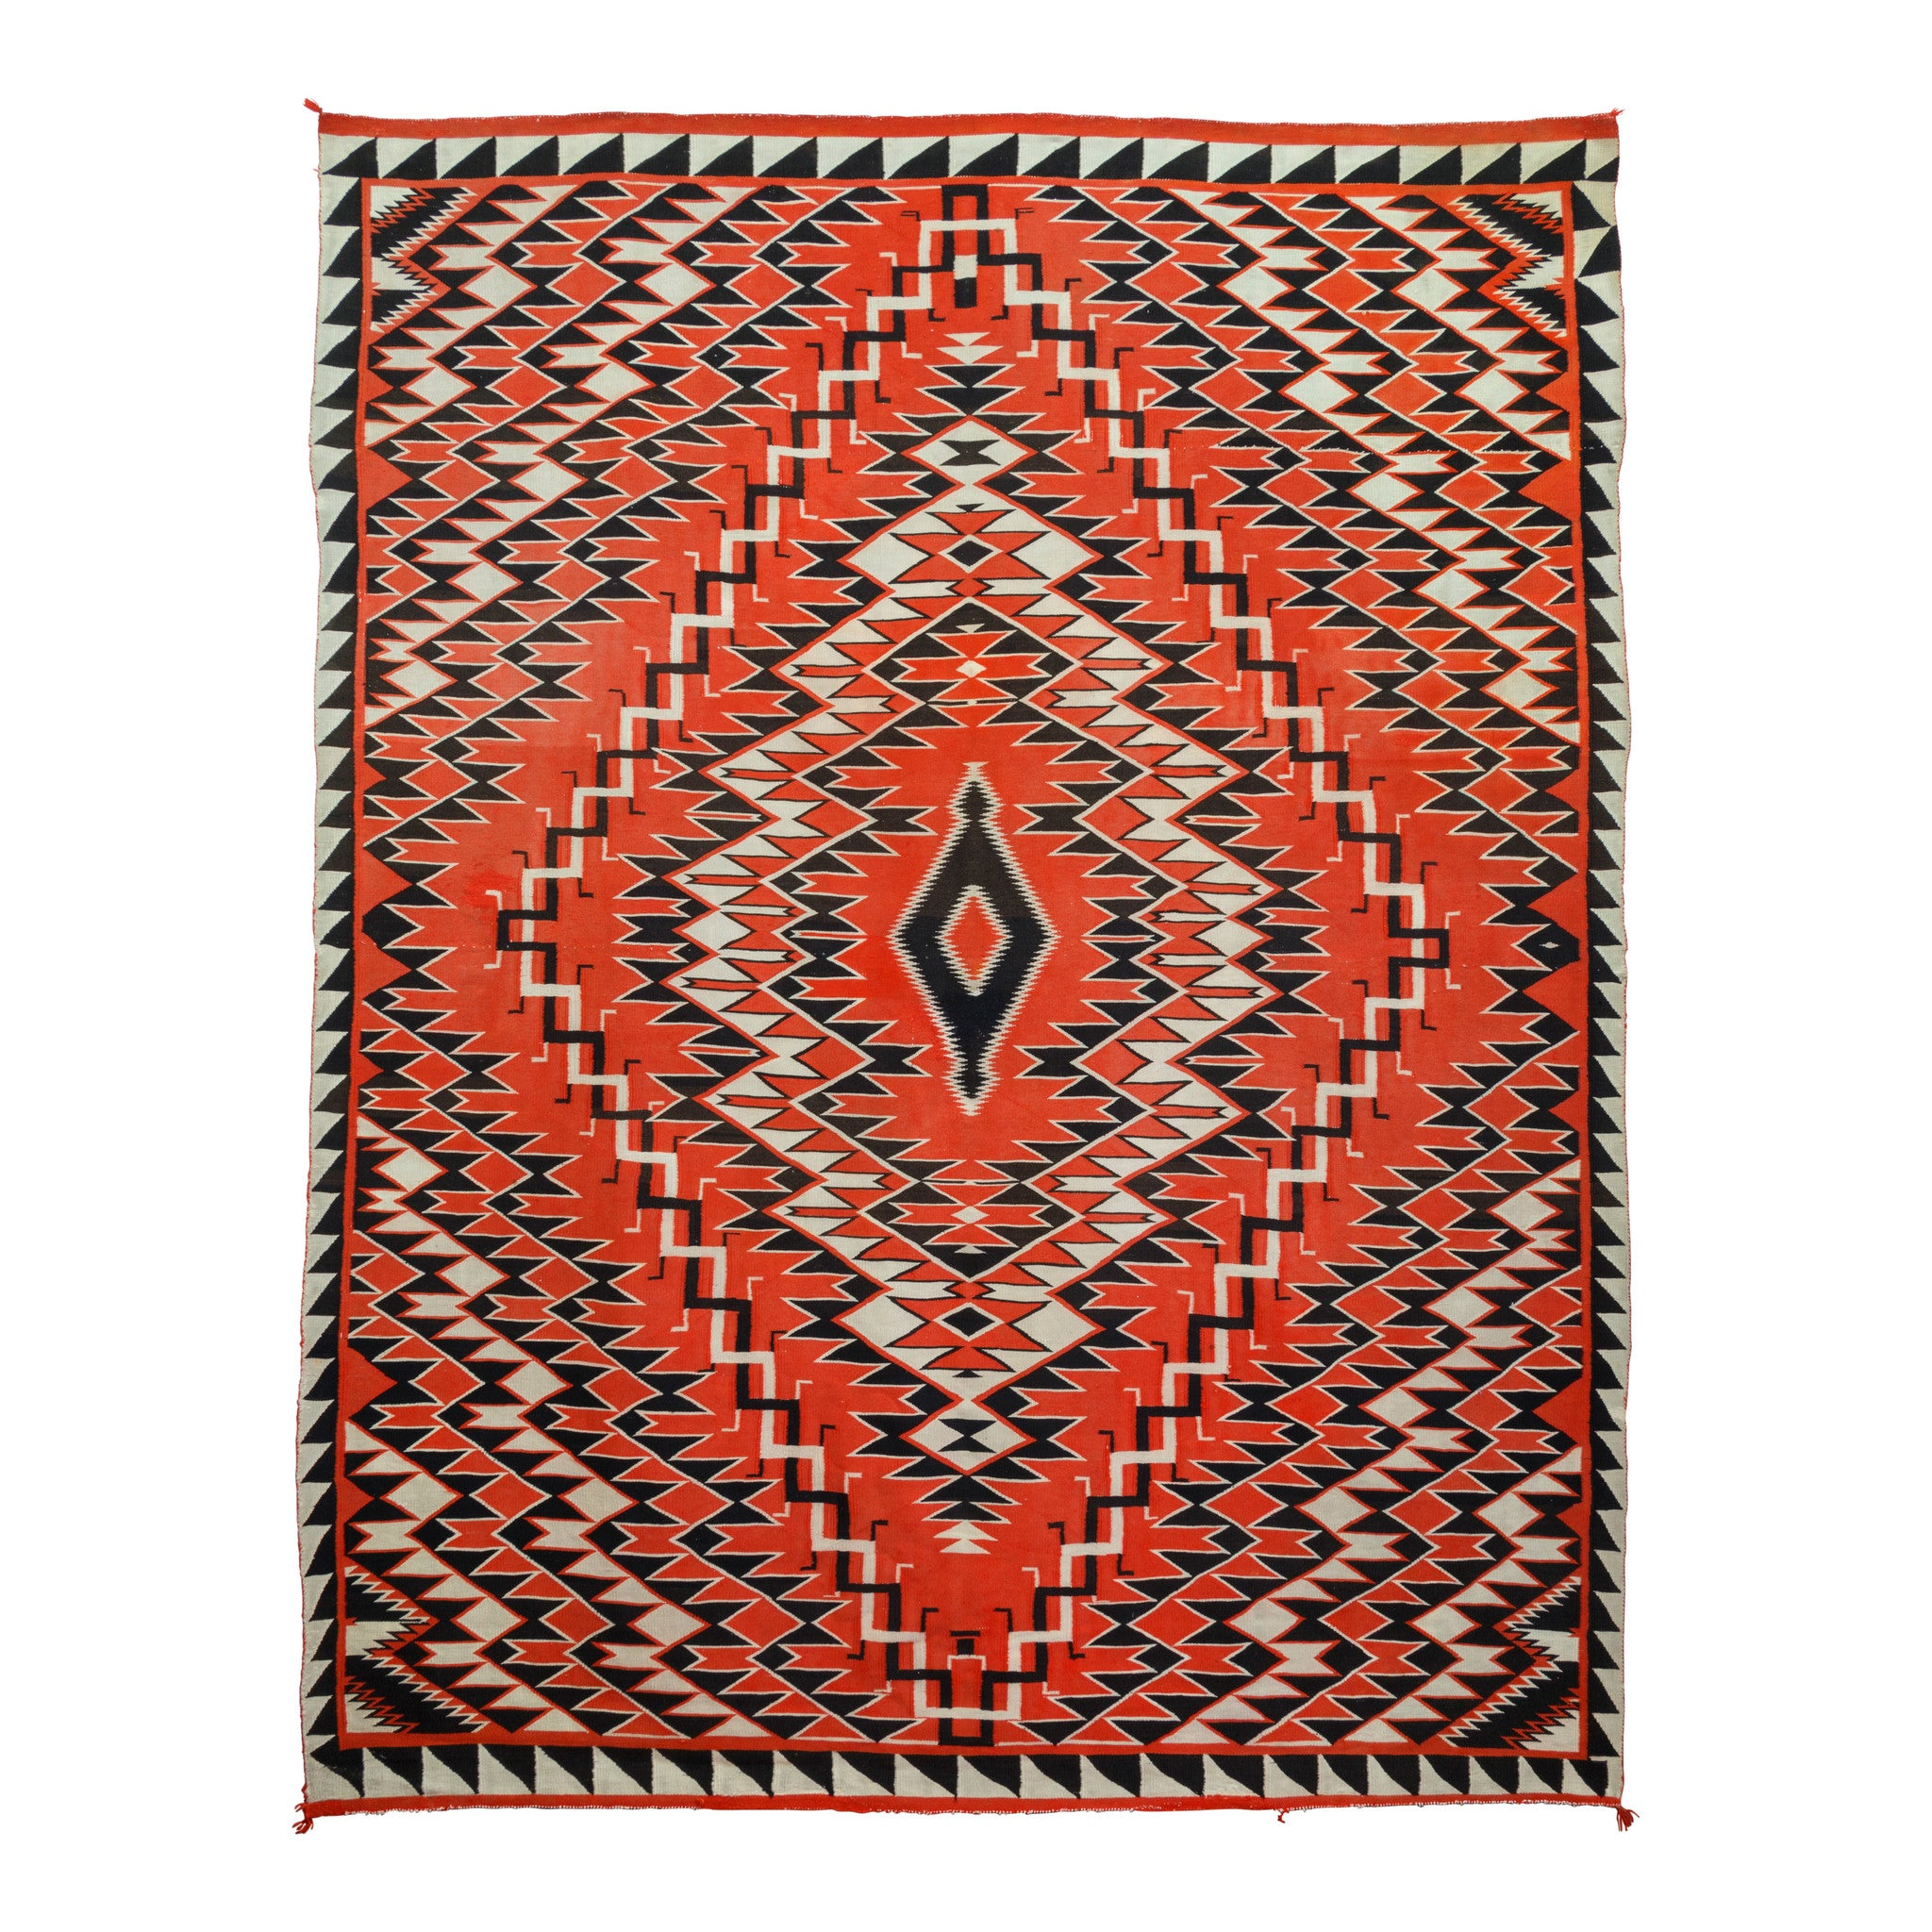 Germantown Dazzler 6' to 8', germantowns, navajo, weavings